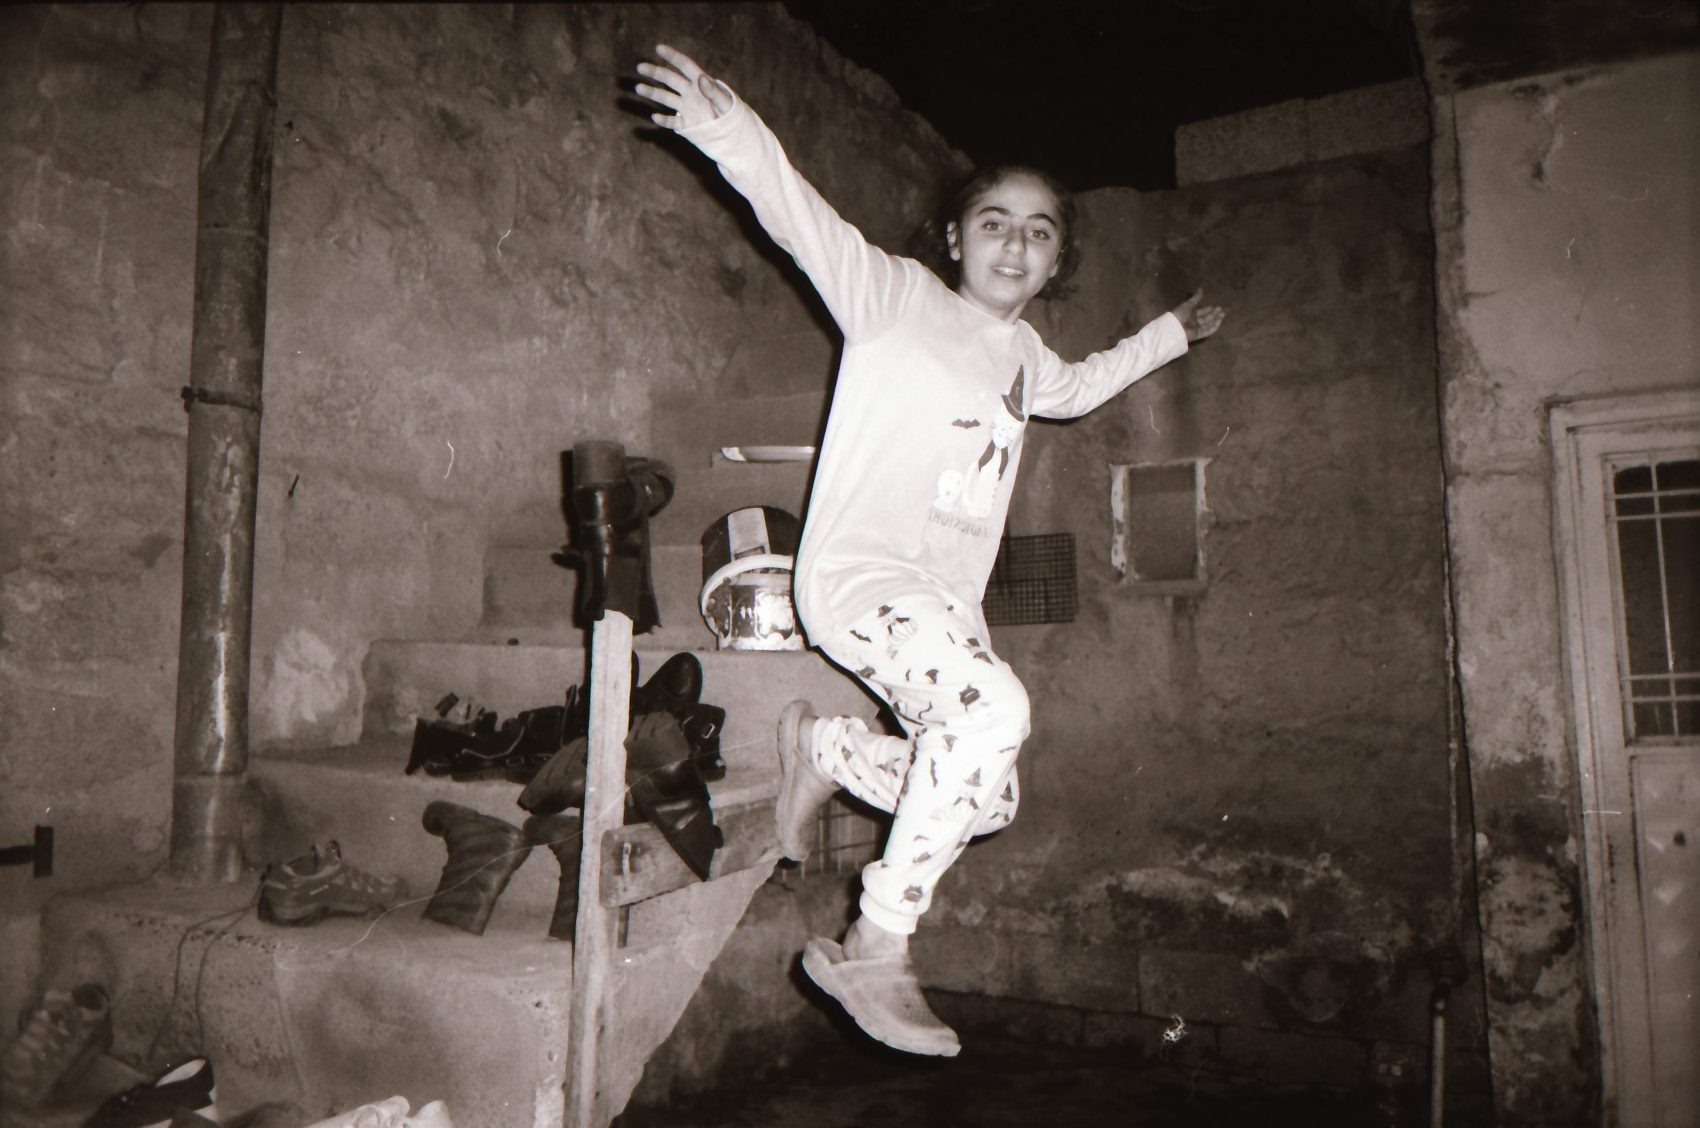 Photo by Refai he is 12 yers old from Qamishlo Syria ( Photos of her sister) ilford Pan 100